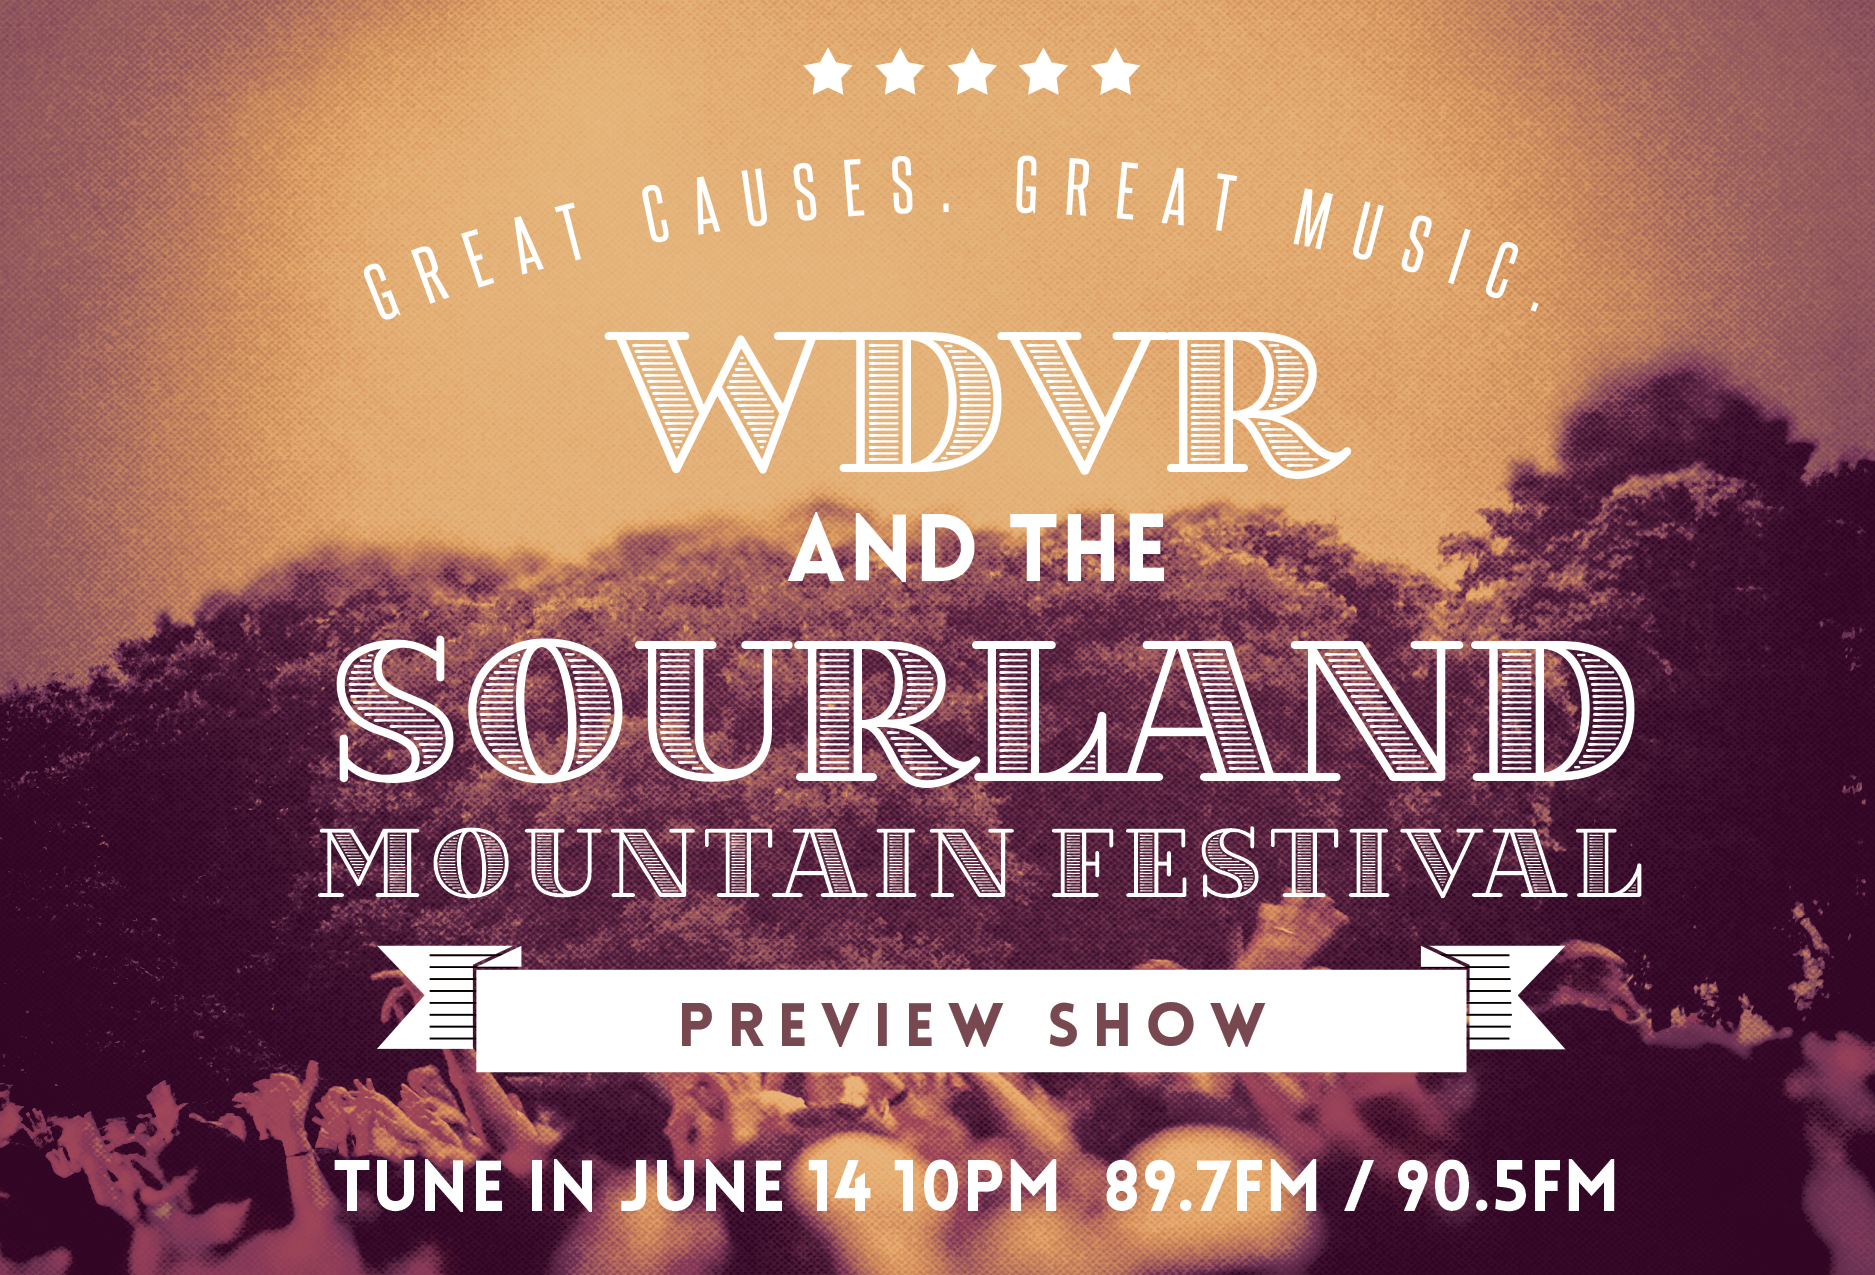 WDVR+Sourlands_preview-banner_11jun.jpg